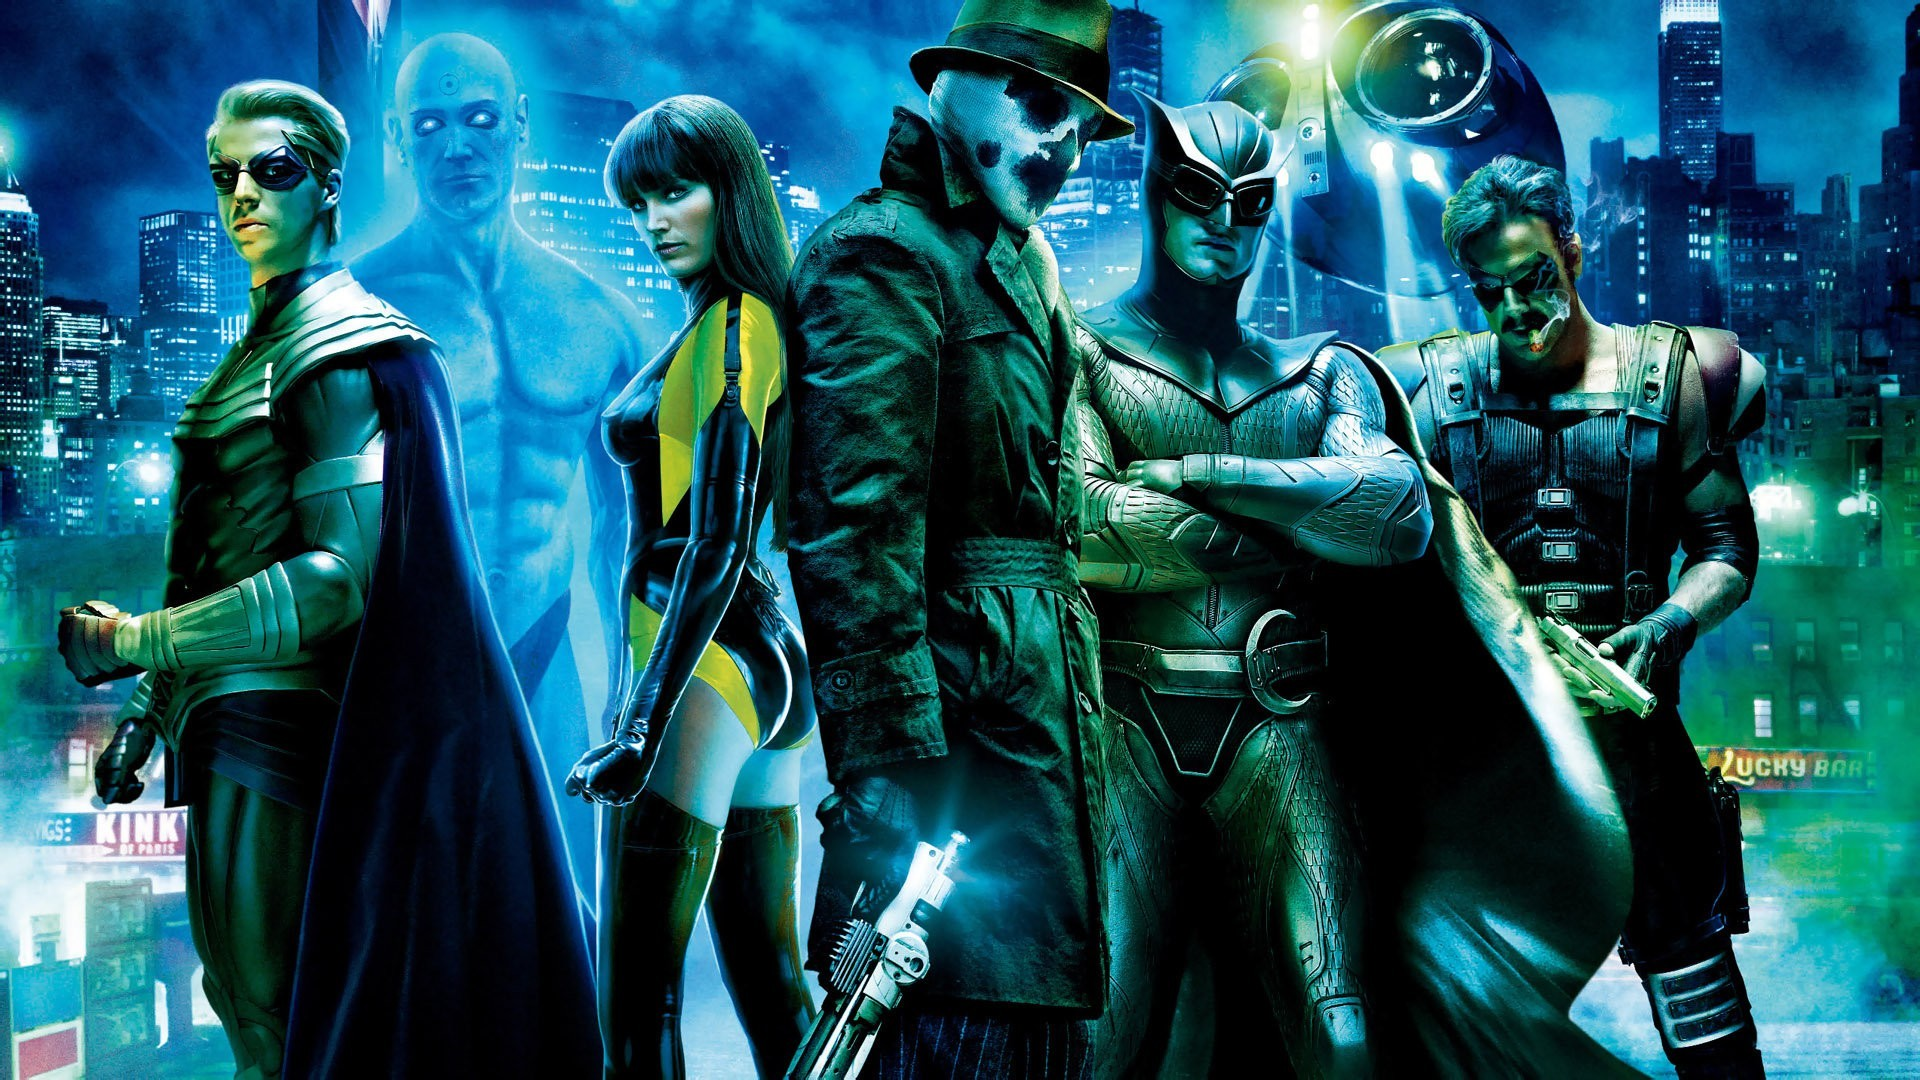 Watchmen Wallpaper